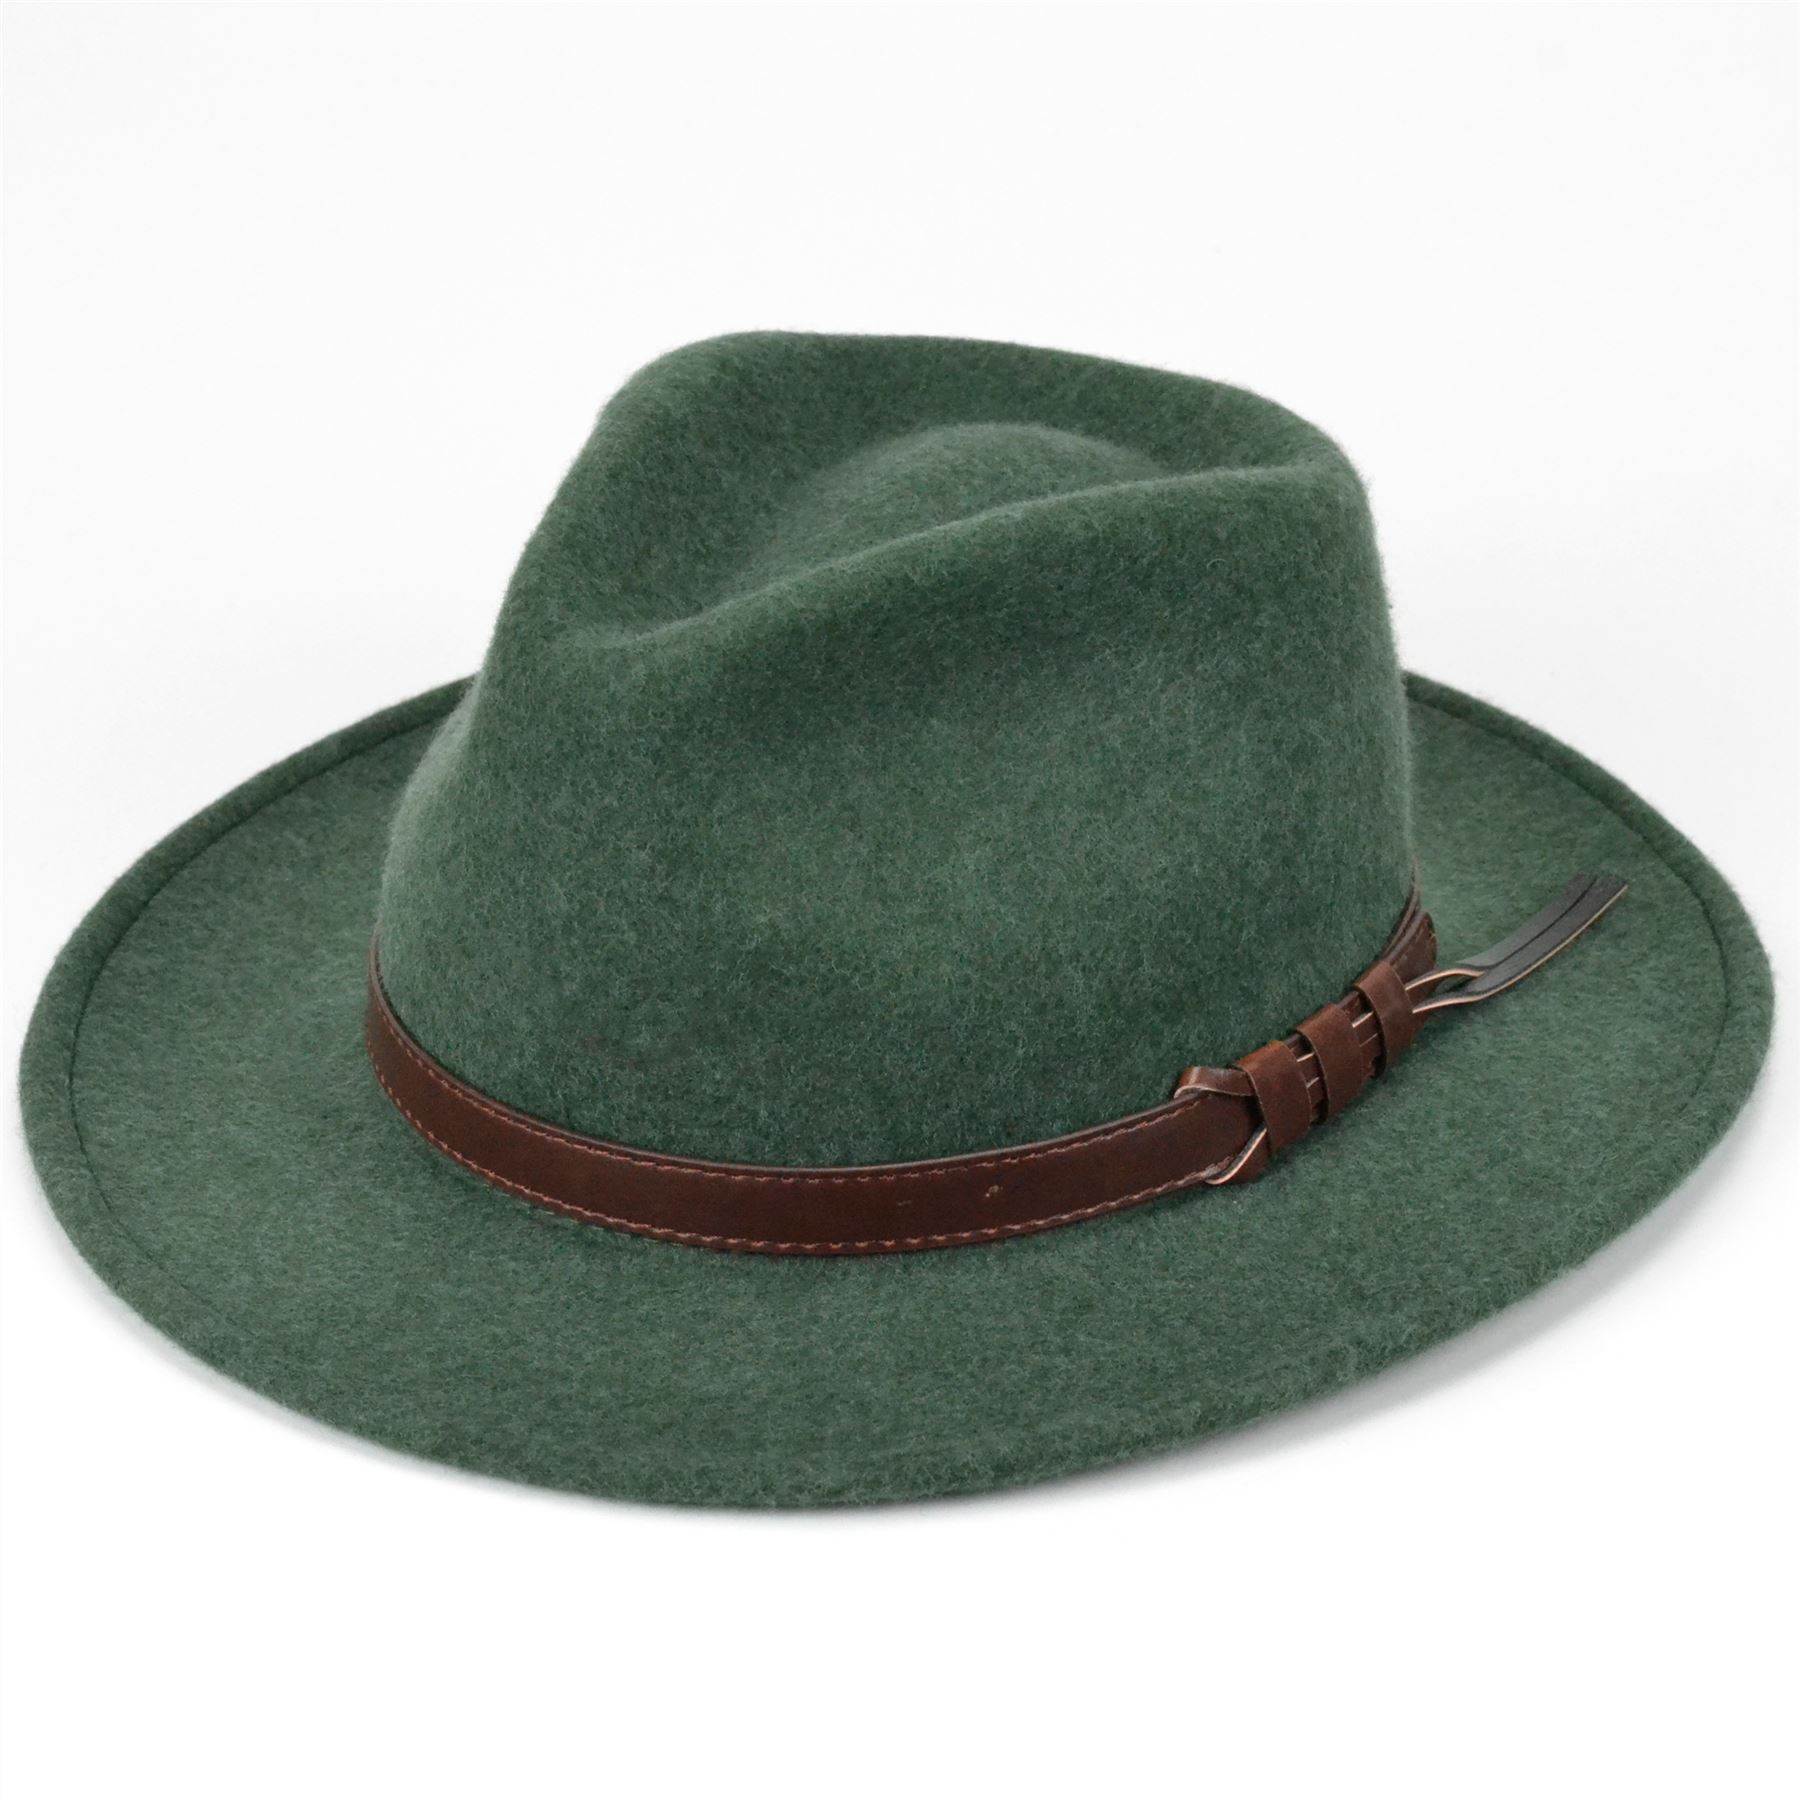 e29f51a316d14 Details about Wool Fedora Hat Felt Hawkins Cap Trilby Men Ladies Unisex  GREEN